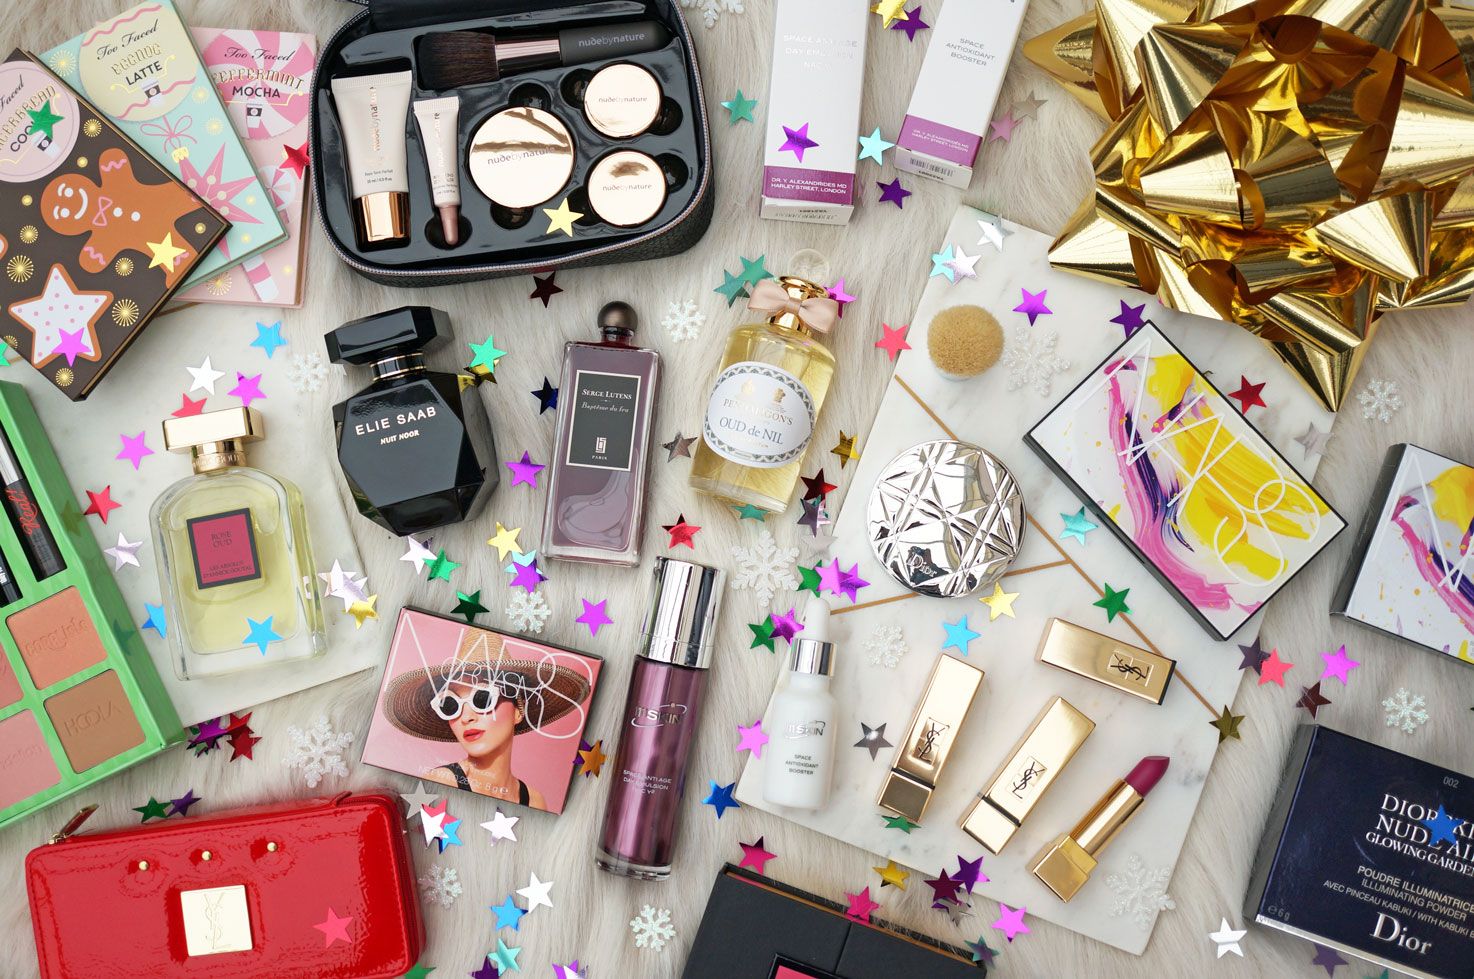 Christmas: Stunning Luxury Beauty & Fragrance Gifts - Thou Shalt Not ...